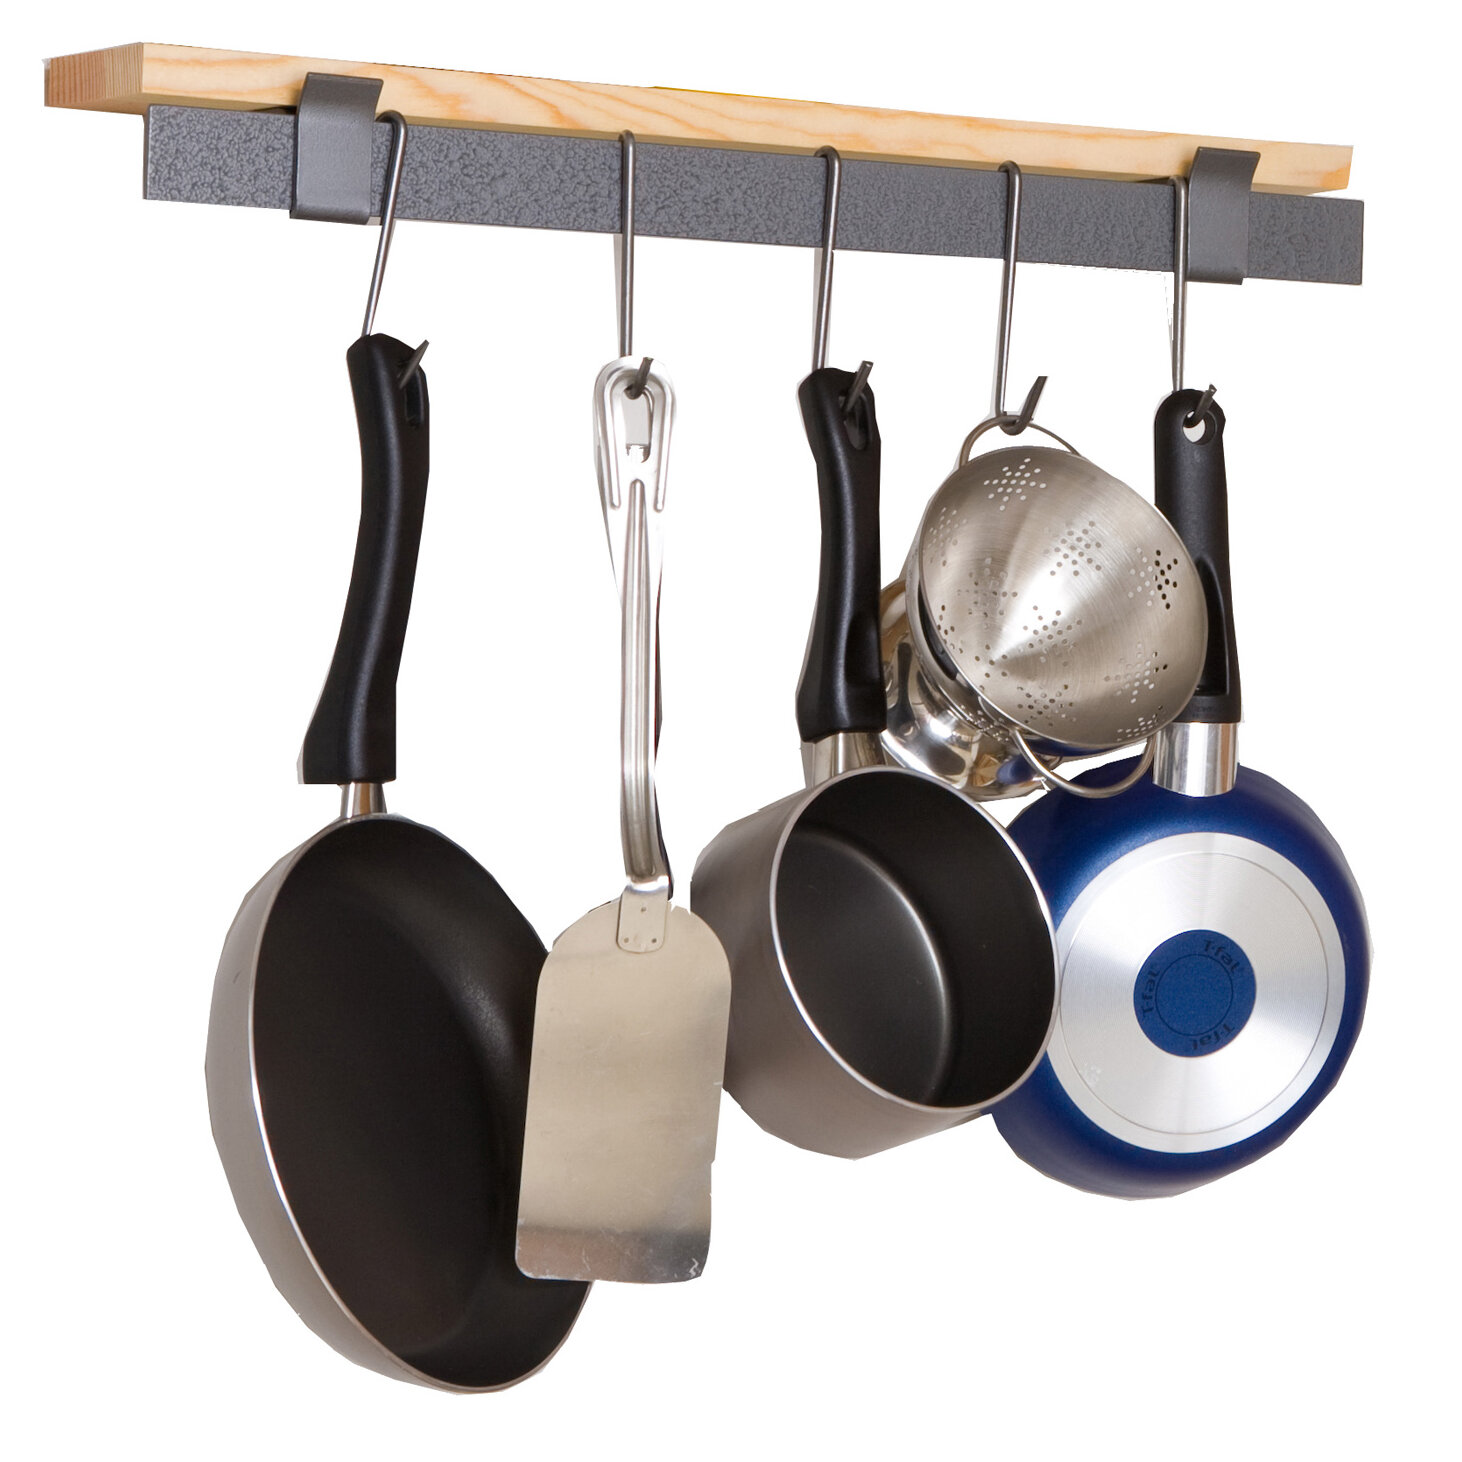 Enclume® Decor Wall Scroll Rack : Decorative wall mounted pot rack for kitchen webnuggetz